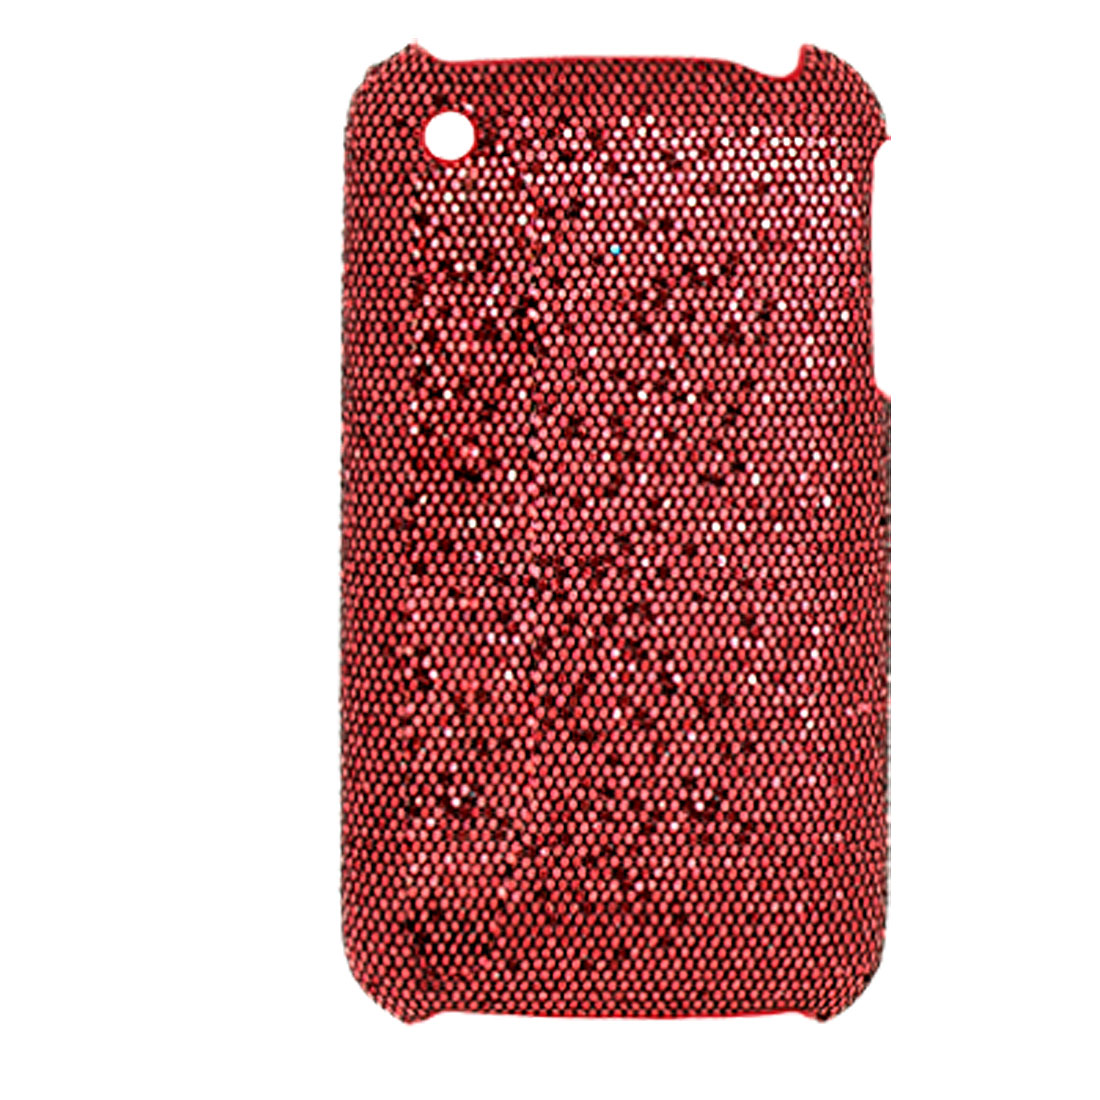 Red Plastic Hard Case Back Cover for Apple iPhone 3G / 3GS